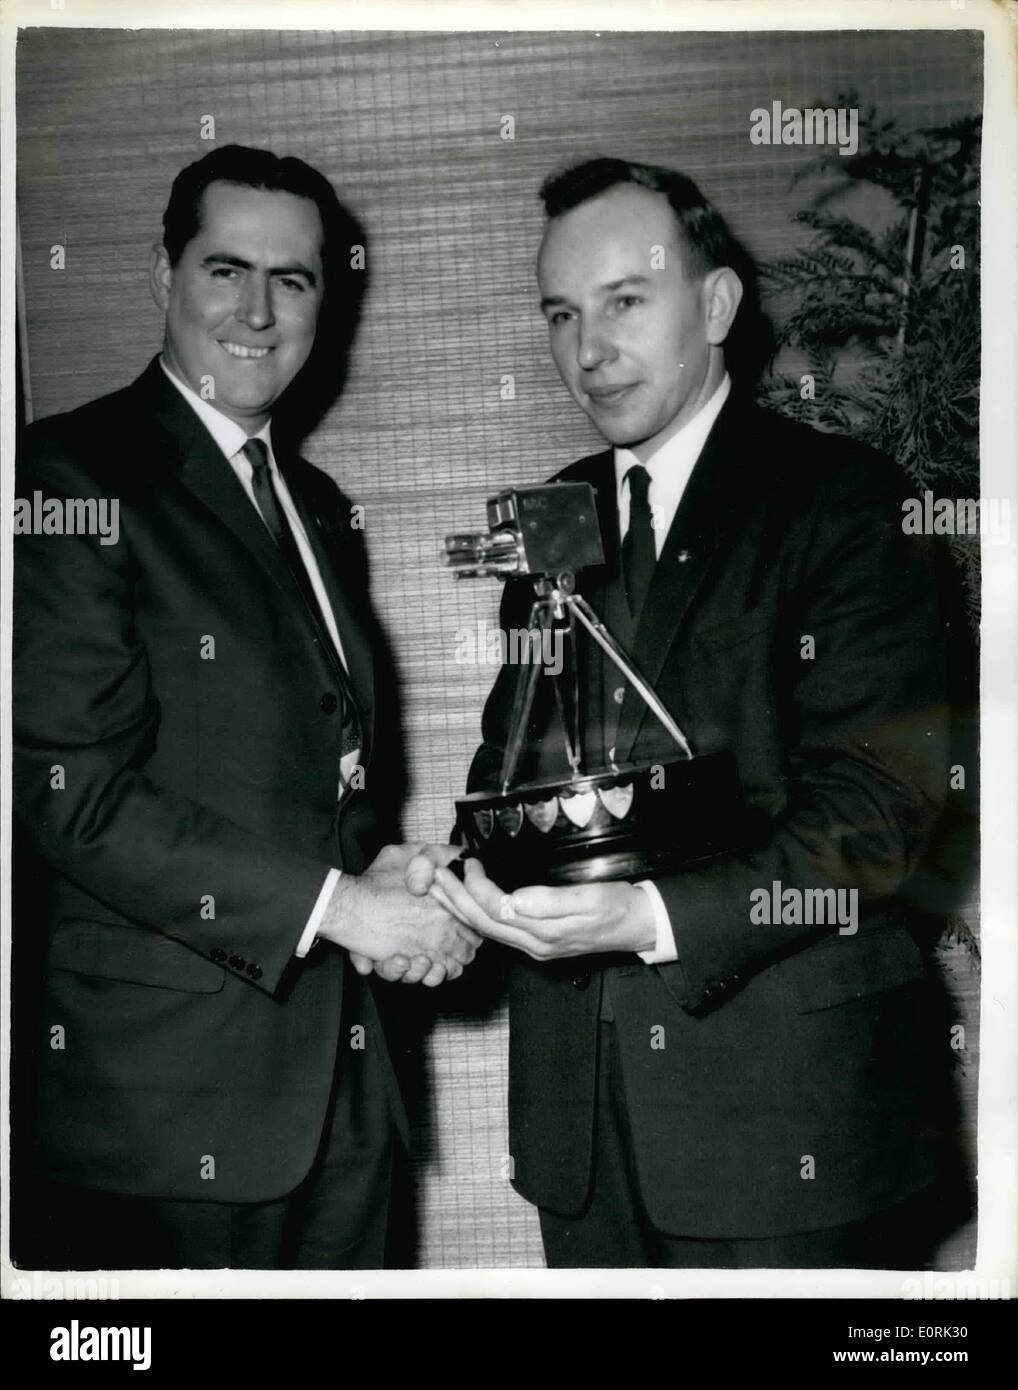 Dec. 12, 1959 - John Surtees is chosen as TV's Sportsman of the Year: John Surtess the fastest man in the world on motorcycle was last night chosen as Sports Personality of 1959 by B.B.C. Television's Sportsview Surtess world motor-cycling champion for the year in succession, was presented with the trophy. a miniature television camera. by Sir John Hunt, of Everest fame. Photo shows two speed champions meet for mutual congratulations - Stock Image